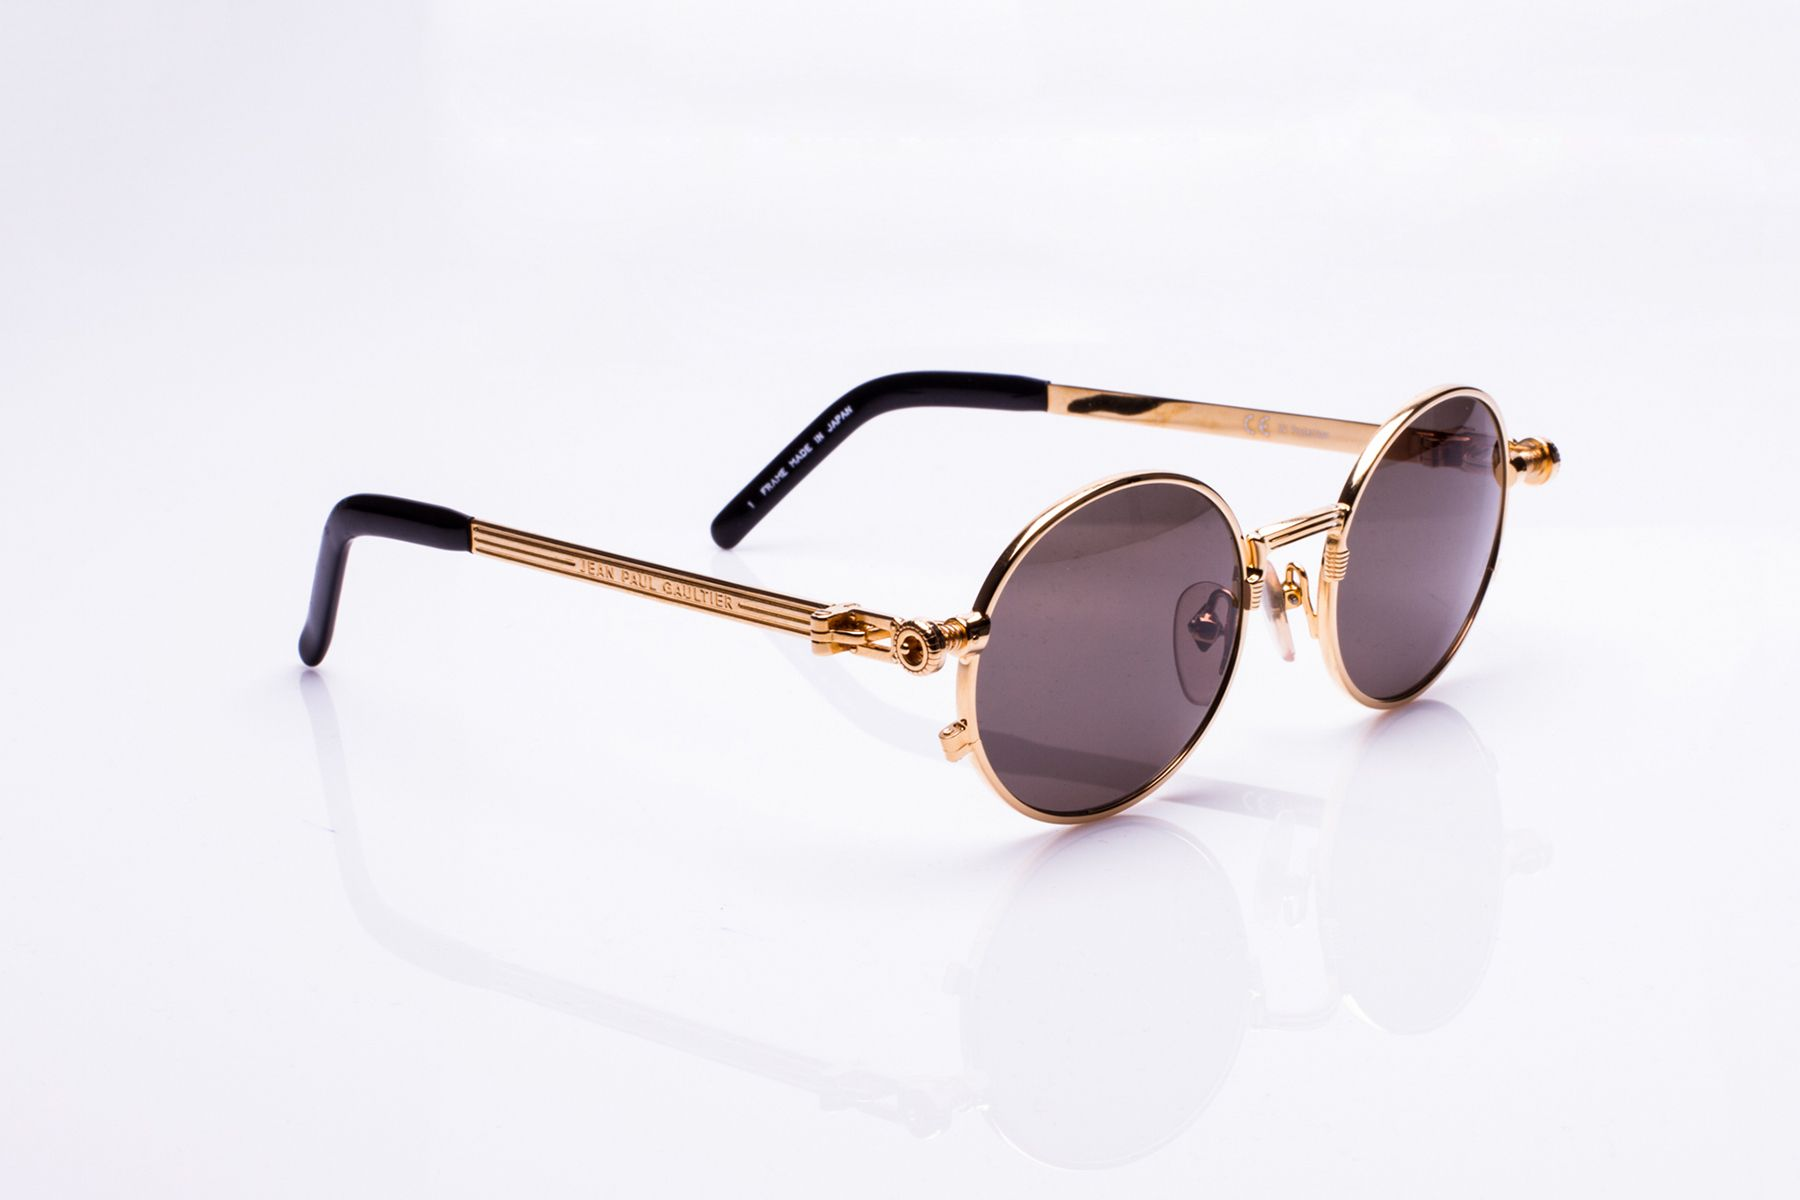 81e556a8923a6 Here s 17 Vintage Frames Streetwear Brands Try to Imitate